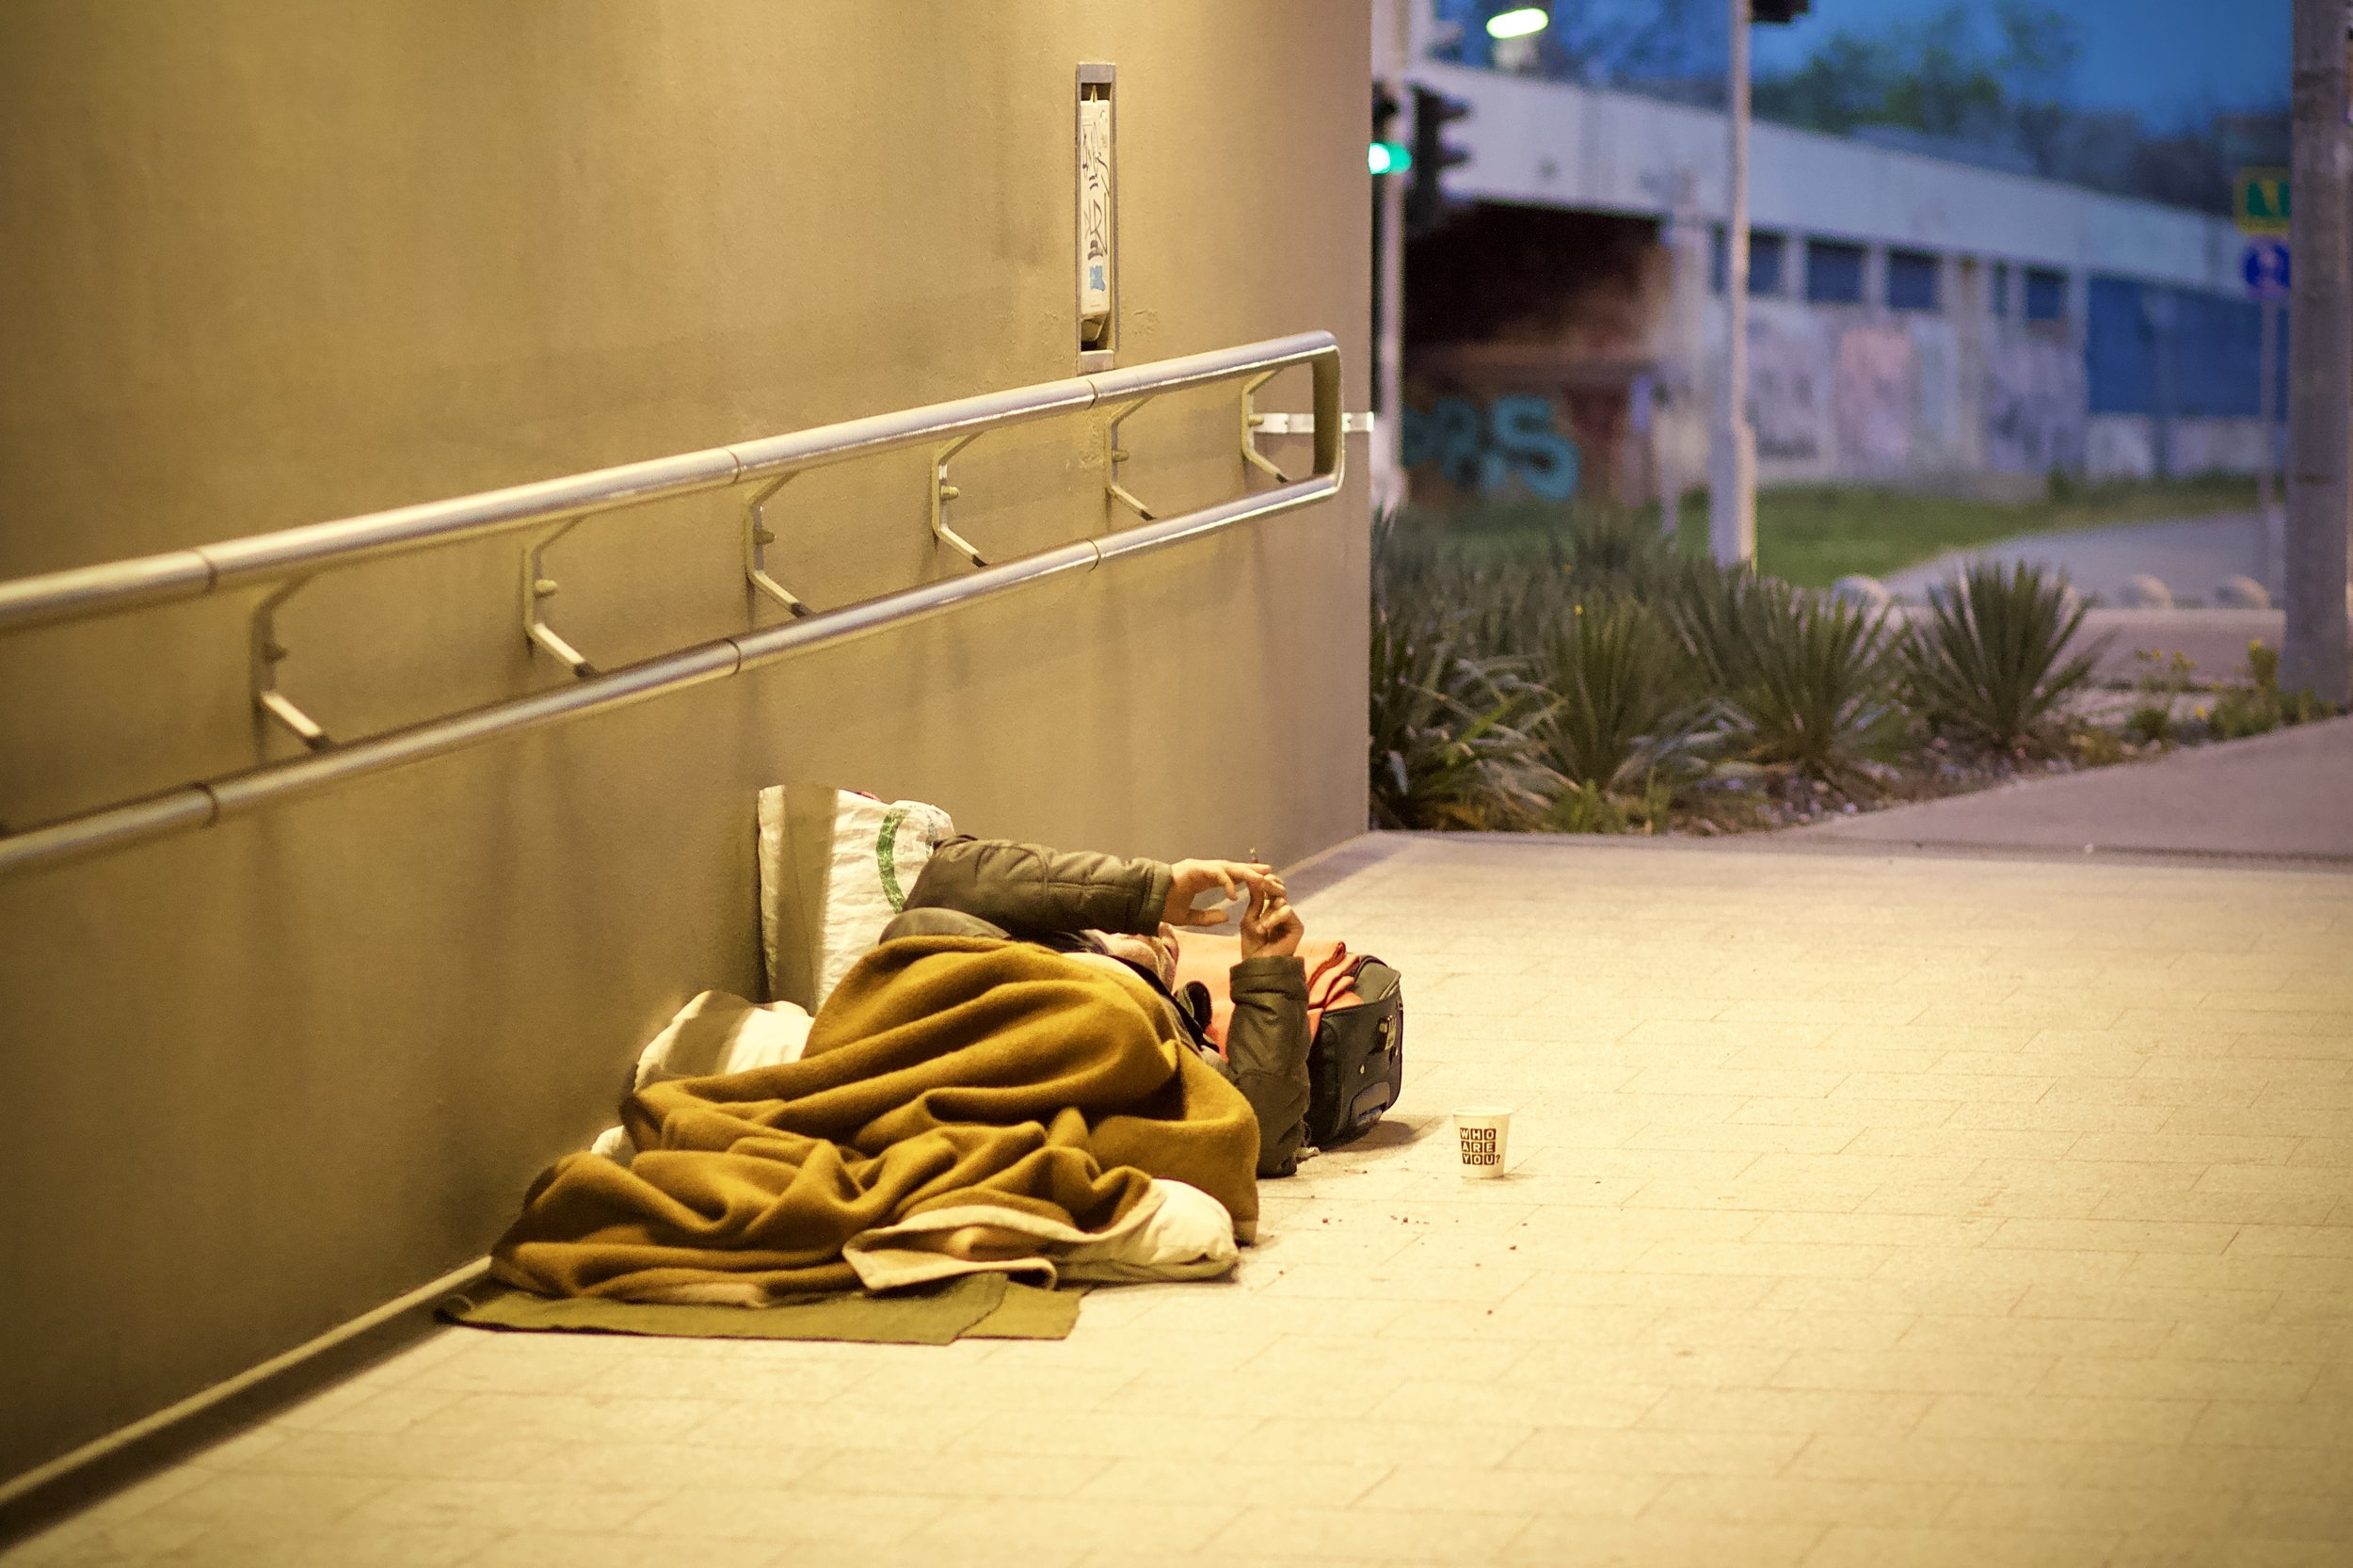 The Greater Washington Community Foundation is leading an effort to help address homelessness in the nation's capital.